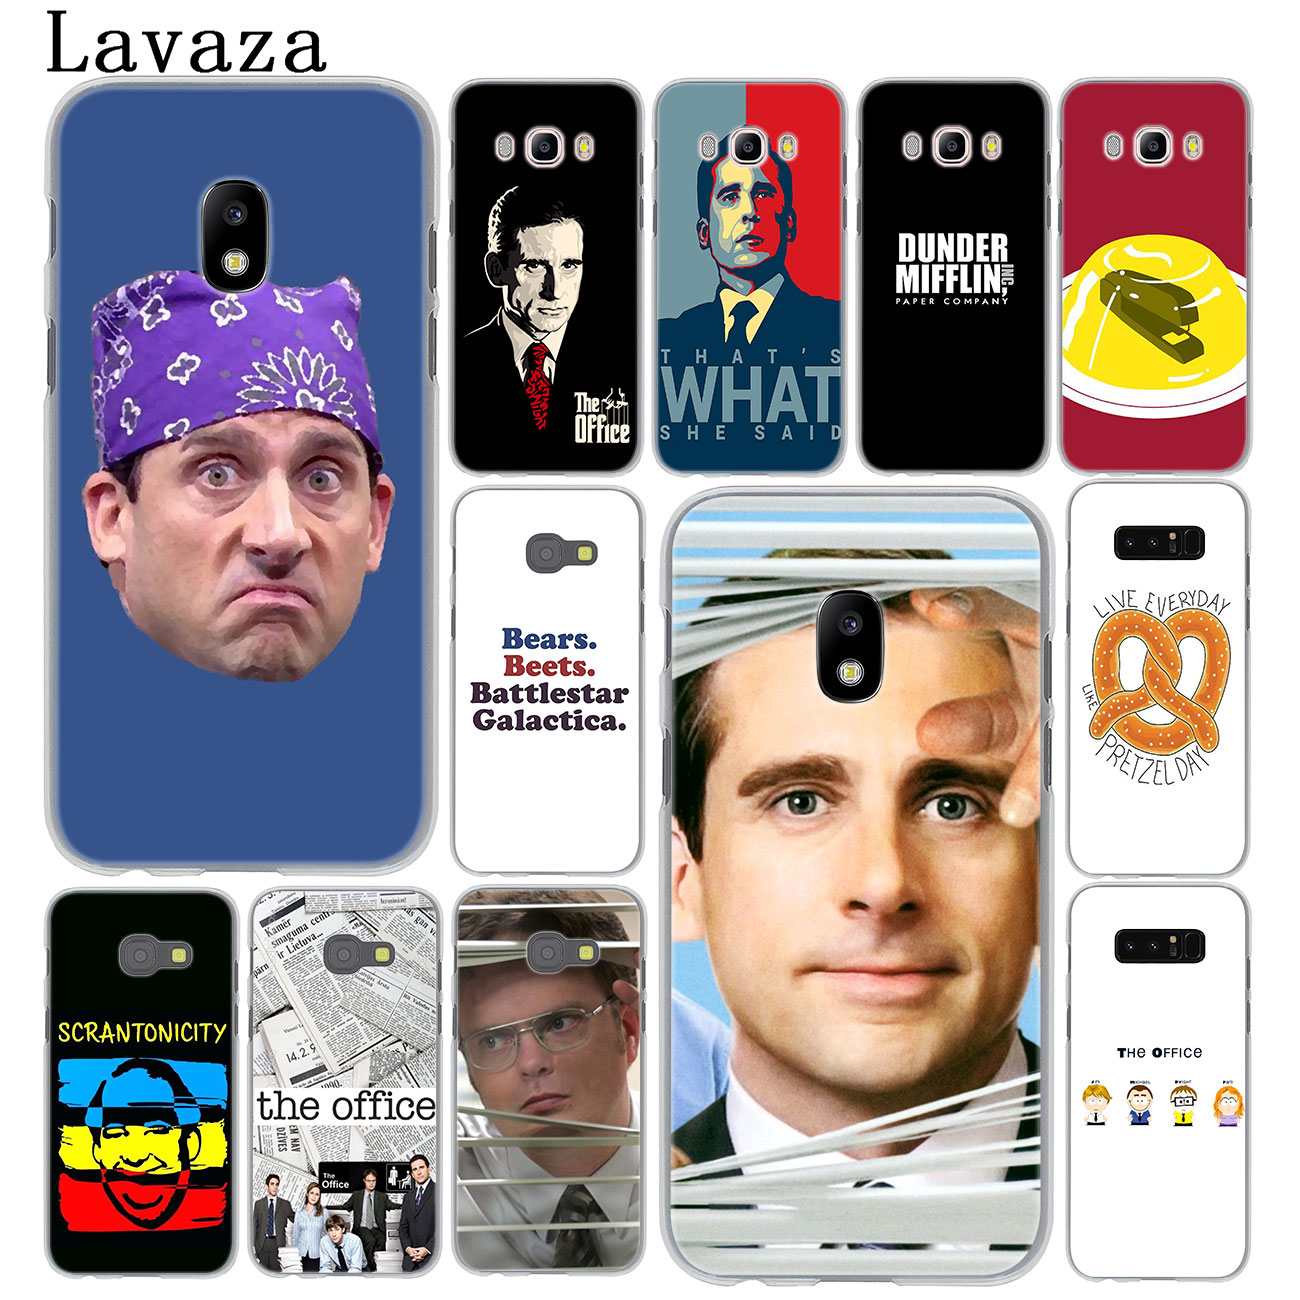 Lavaza TV the office cast meme Hard Phone Case for Samsung Galaxy J8 J7 Duo J6 J5 J4 Plus 2018 2017 2016 2015 J2 J3 Prime EU US image